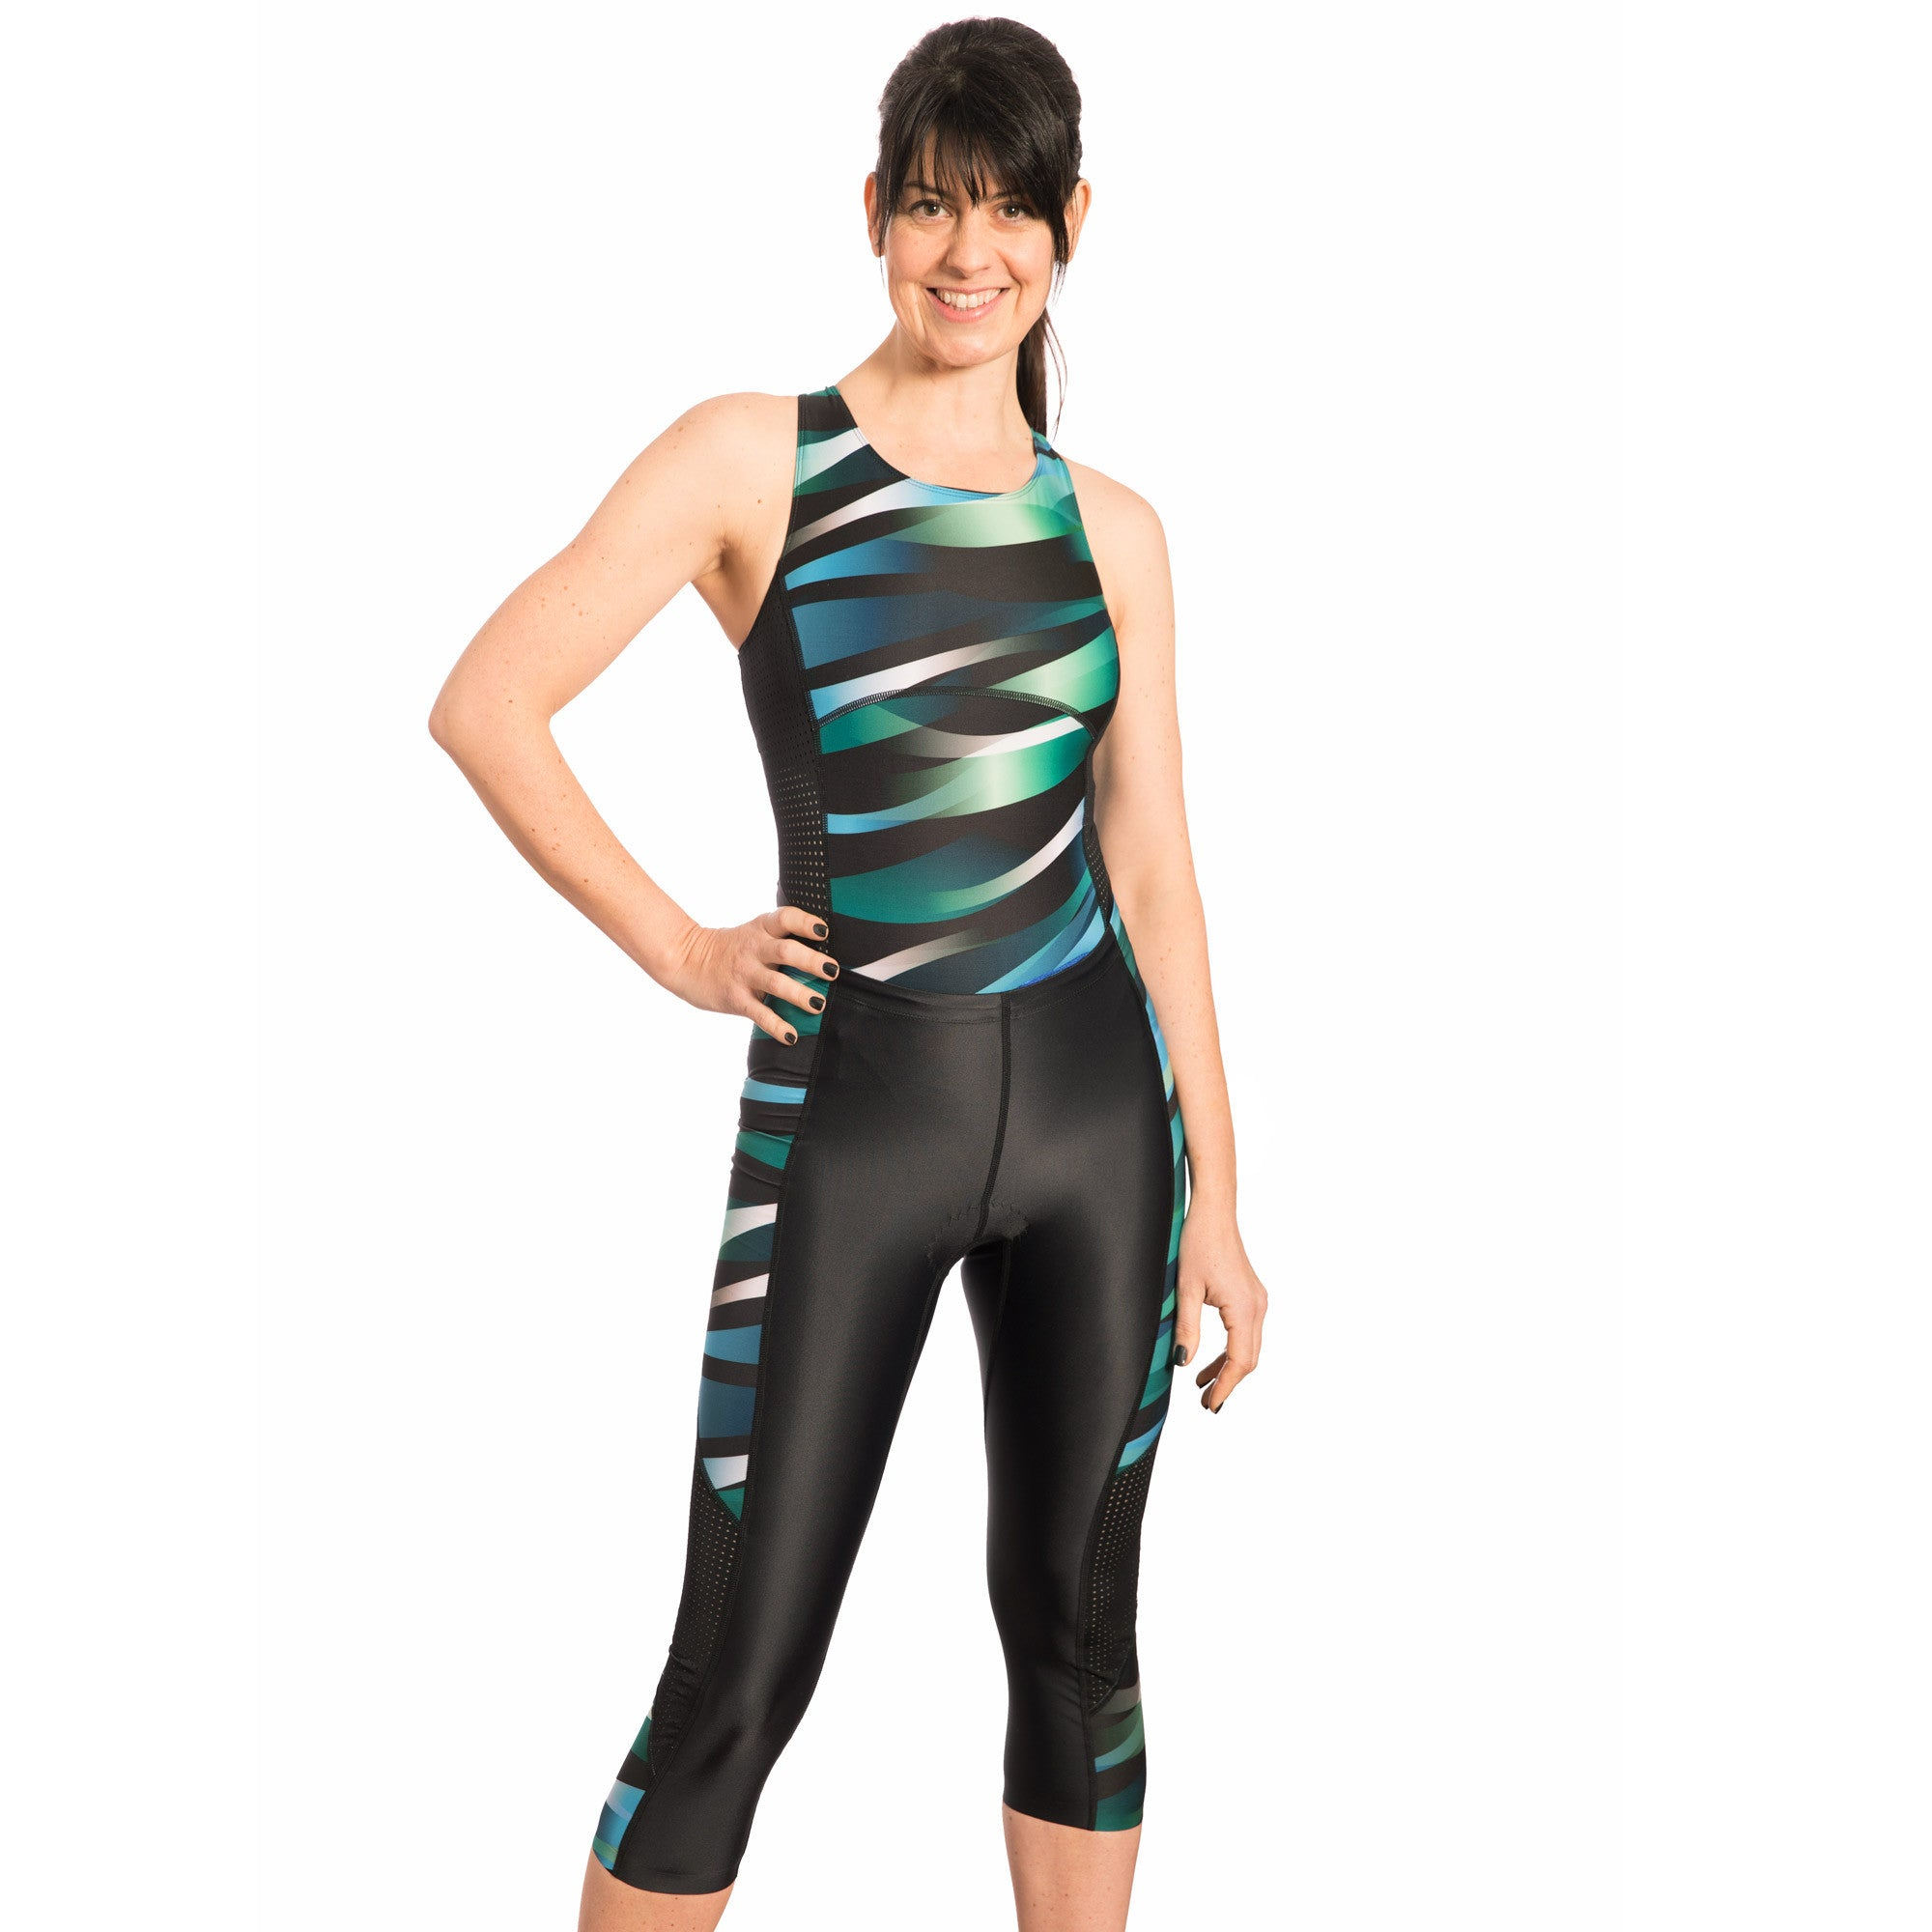 Wave & Pace Swimsuit and Capri Tri Set - SALE 25% OFF